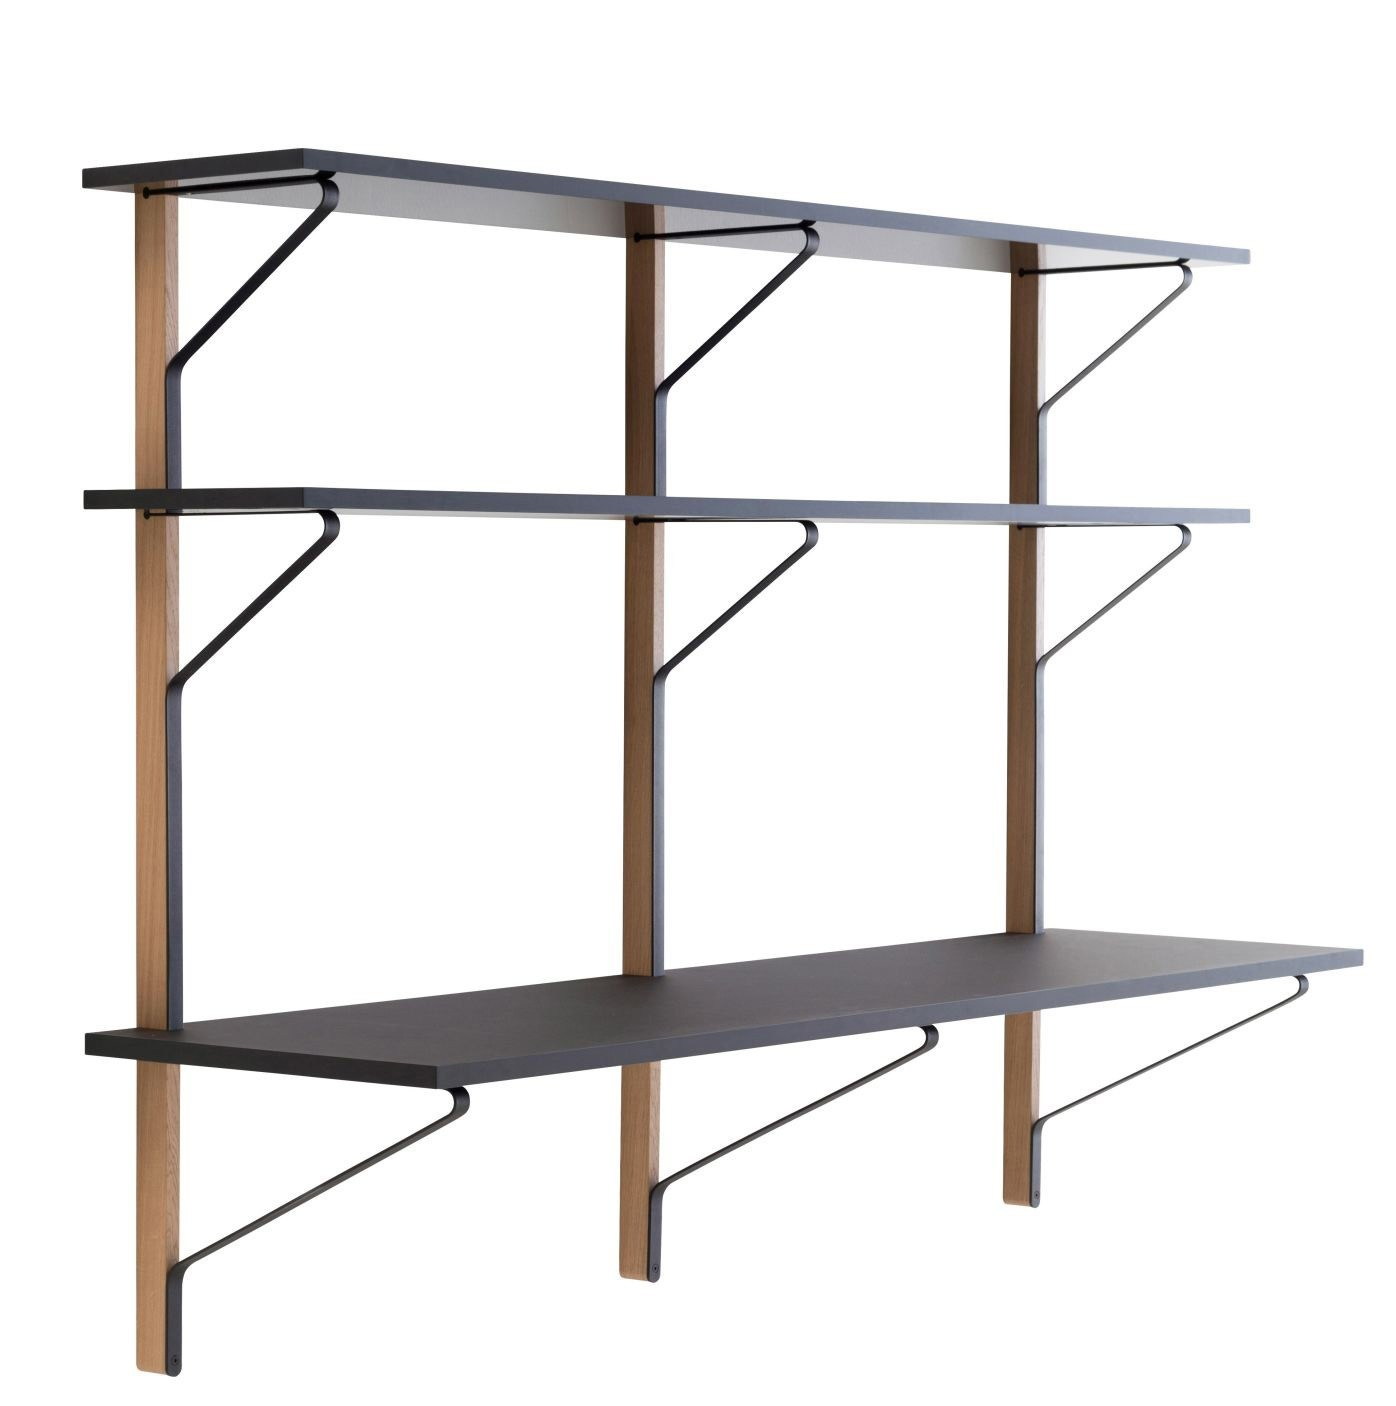 Artek REB 013 Kaari Wall Shelf with Desk